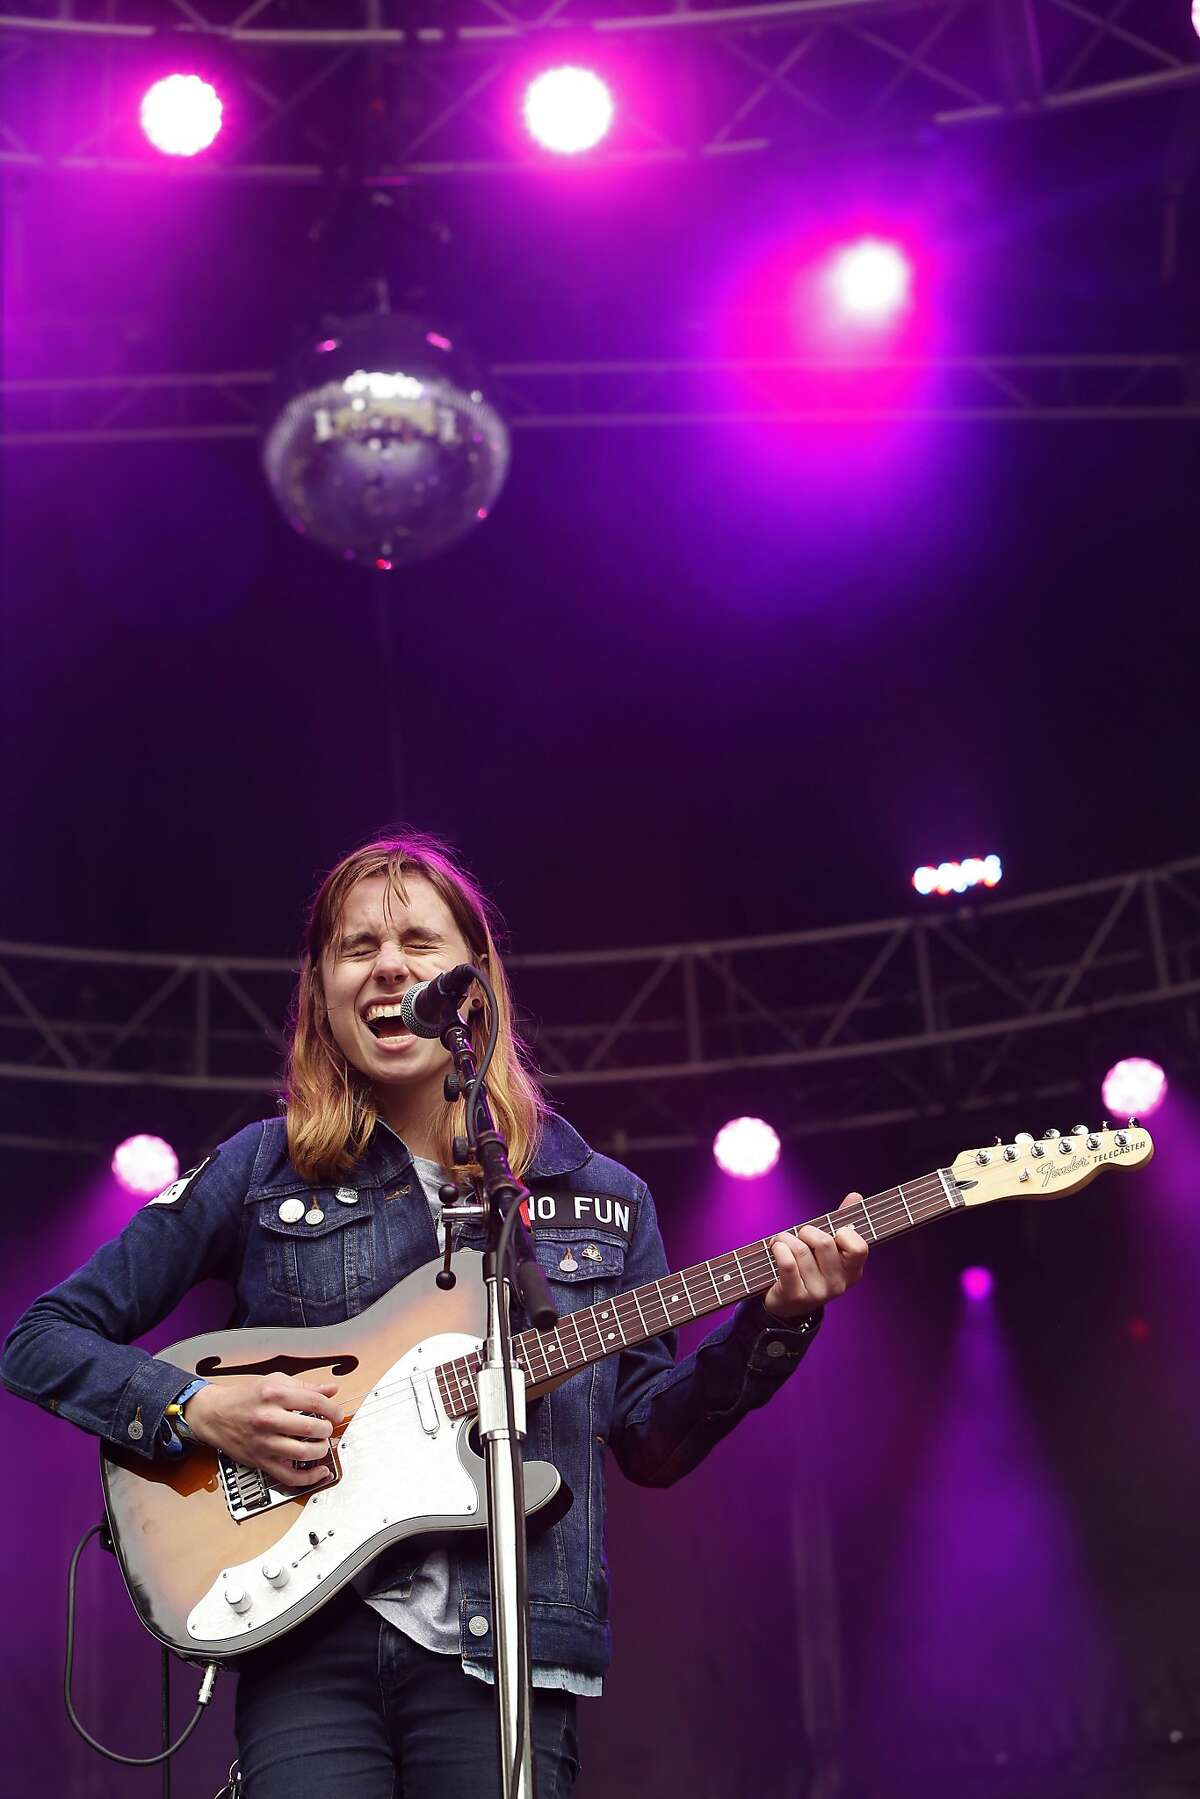 Julien Baker performs on the Sutro stage during day two of the Outside Lands Music Festival in Golden Gate Park in San Francisco, California, on Sat. Aug. 6, 2016.